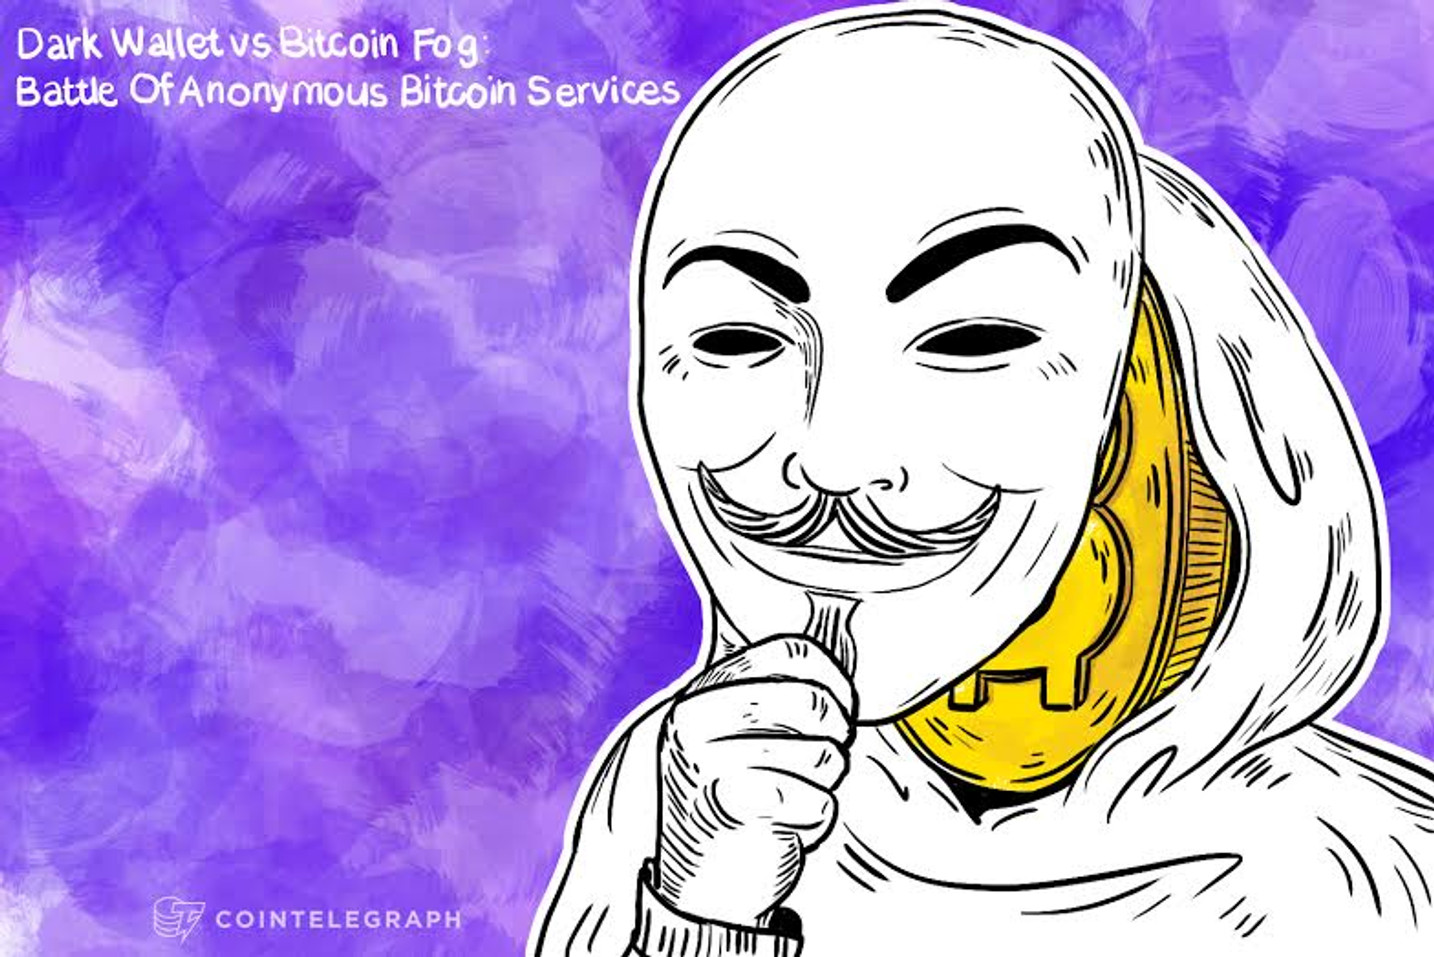 Dark Wallet vs Bitcoin Fog: Battle Of Anonymous Bitcoin Services